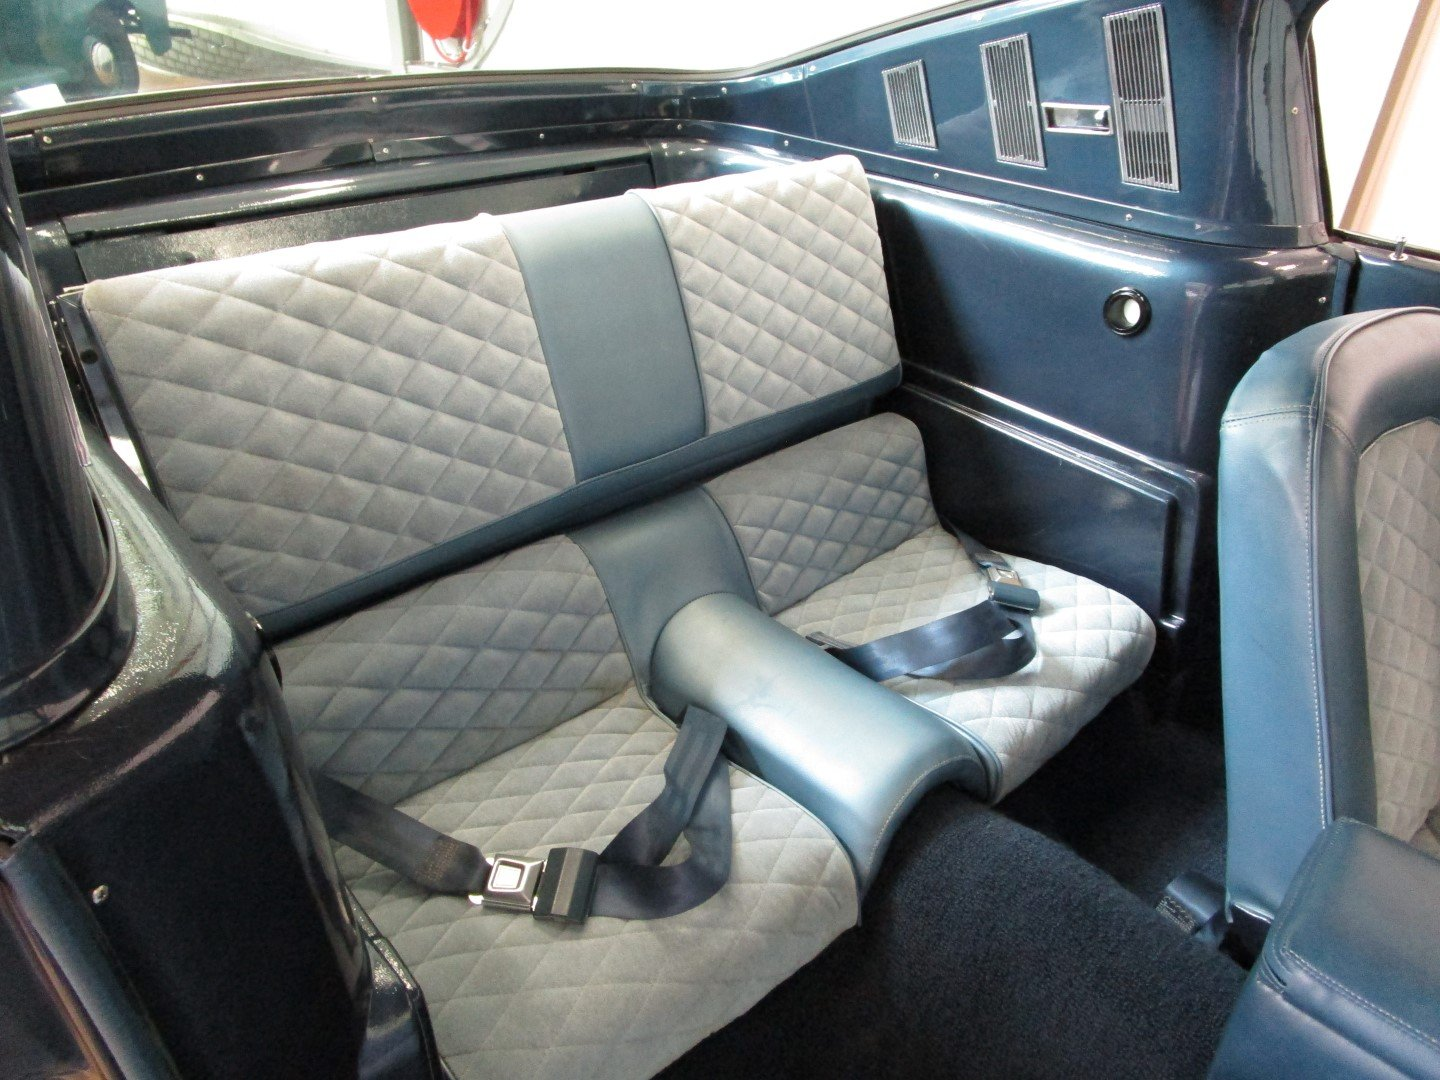 1965 Ford Mustang 289 V8 Fastback 2+2 For Sale (picture 5 of 6)